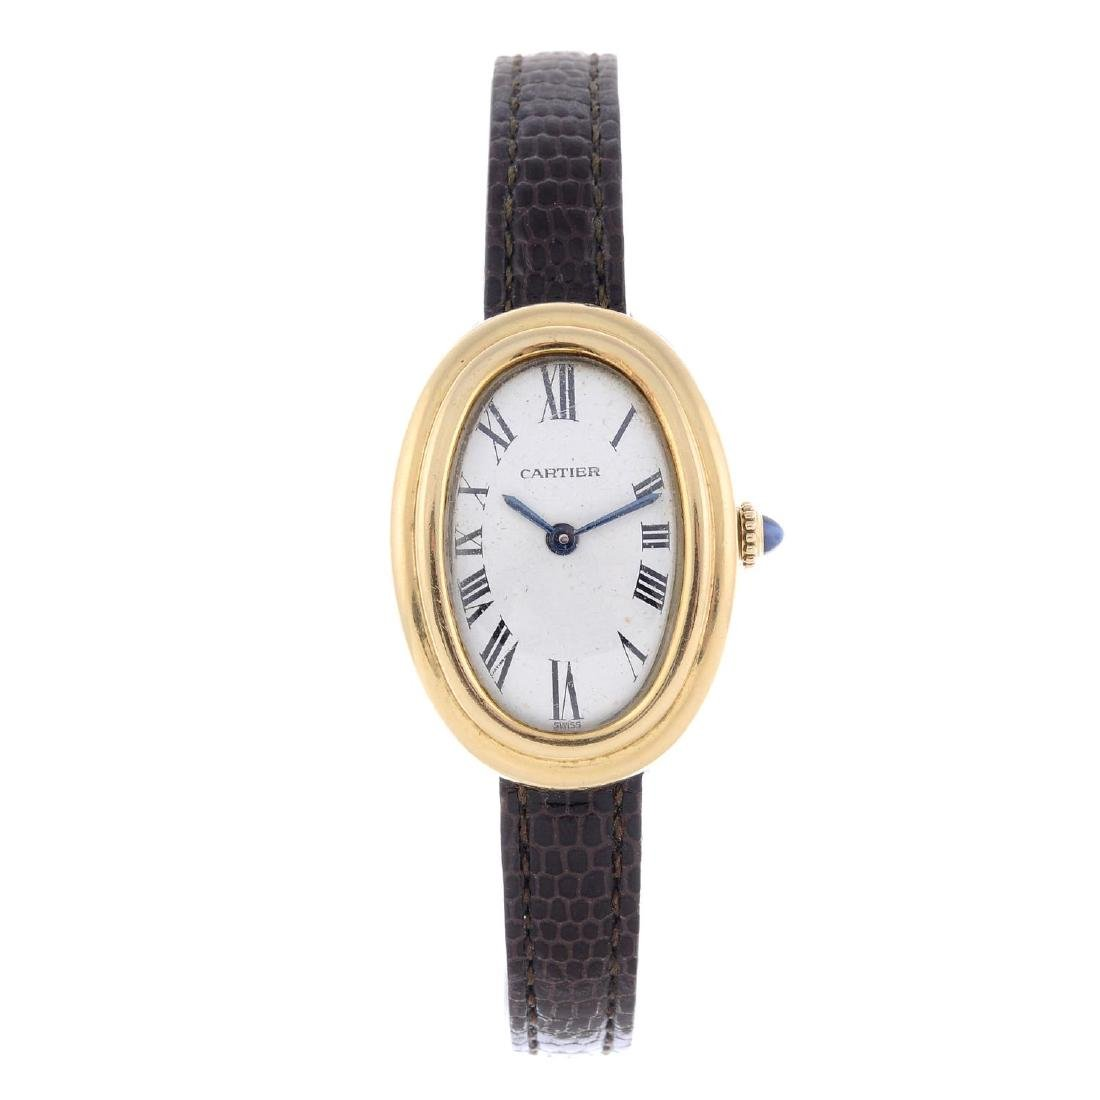 CARTIER - a Baignoire wrist watch. 18ct yellow gold